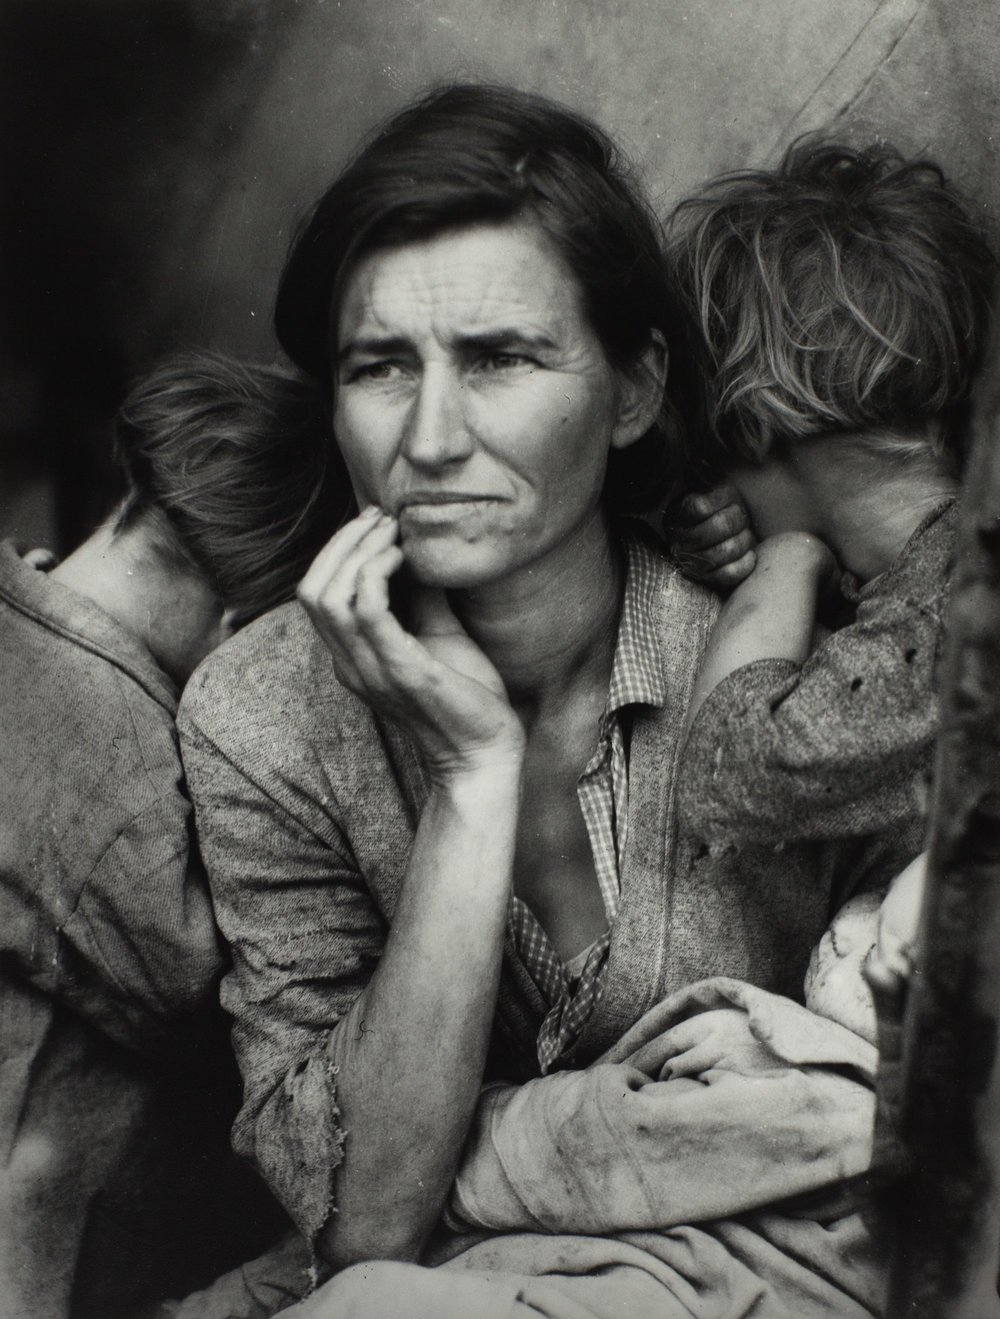 Dorothea Lange 1895-1965, Migrant Mother 1936,Photograph, gelatin silver print on paper, 318 x 241 mm, The Sir Elton John Photography Collection.